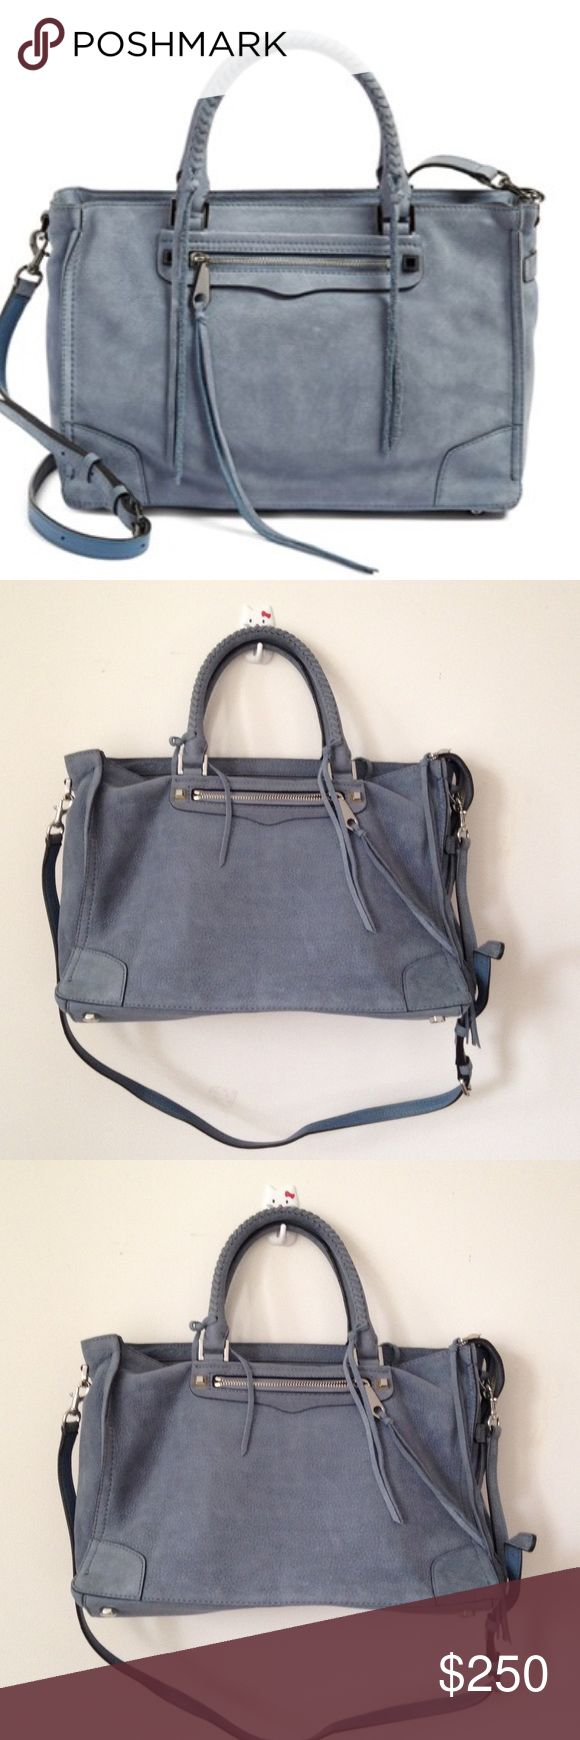 ‼SUNDAY SALE‼ Rebecca Minkoff Regan Satchel Bag Beautiful Regan Satchel from Rebecca Minkoff in lovely light blue suede leather. Large size. In great shape with some light scuffs on suede leather. Comes with detachable long strap. Rebecca Minkoff Bags Satchels